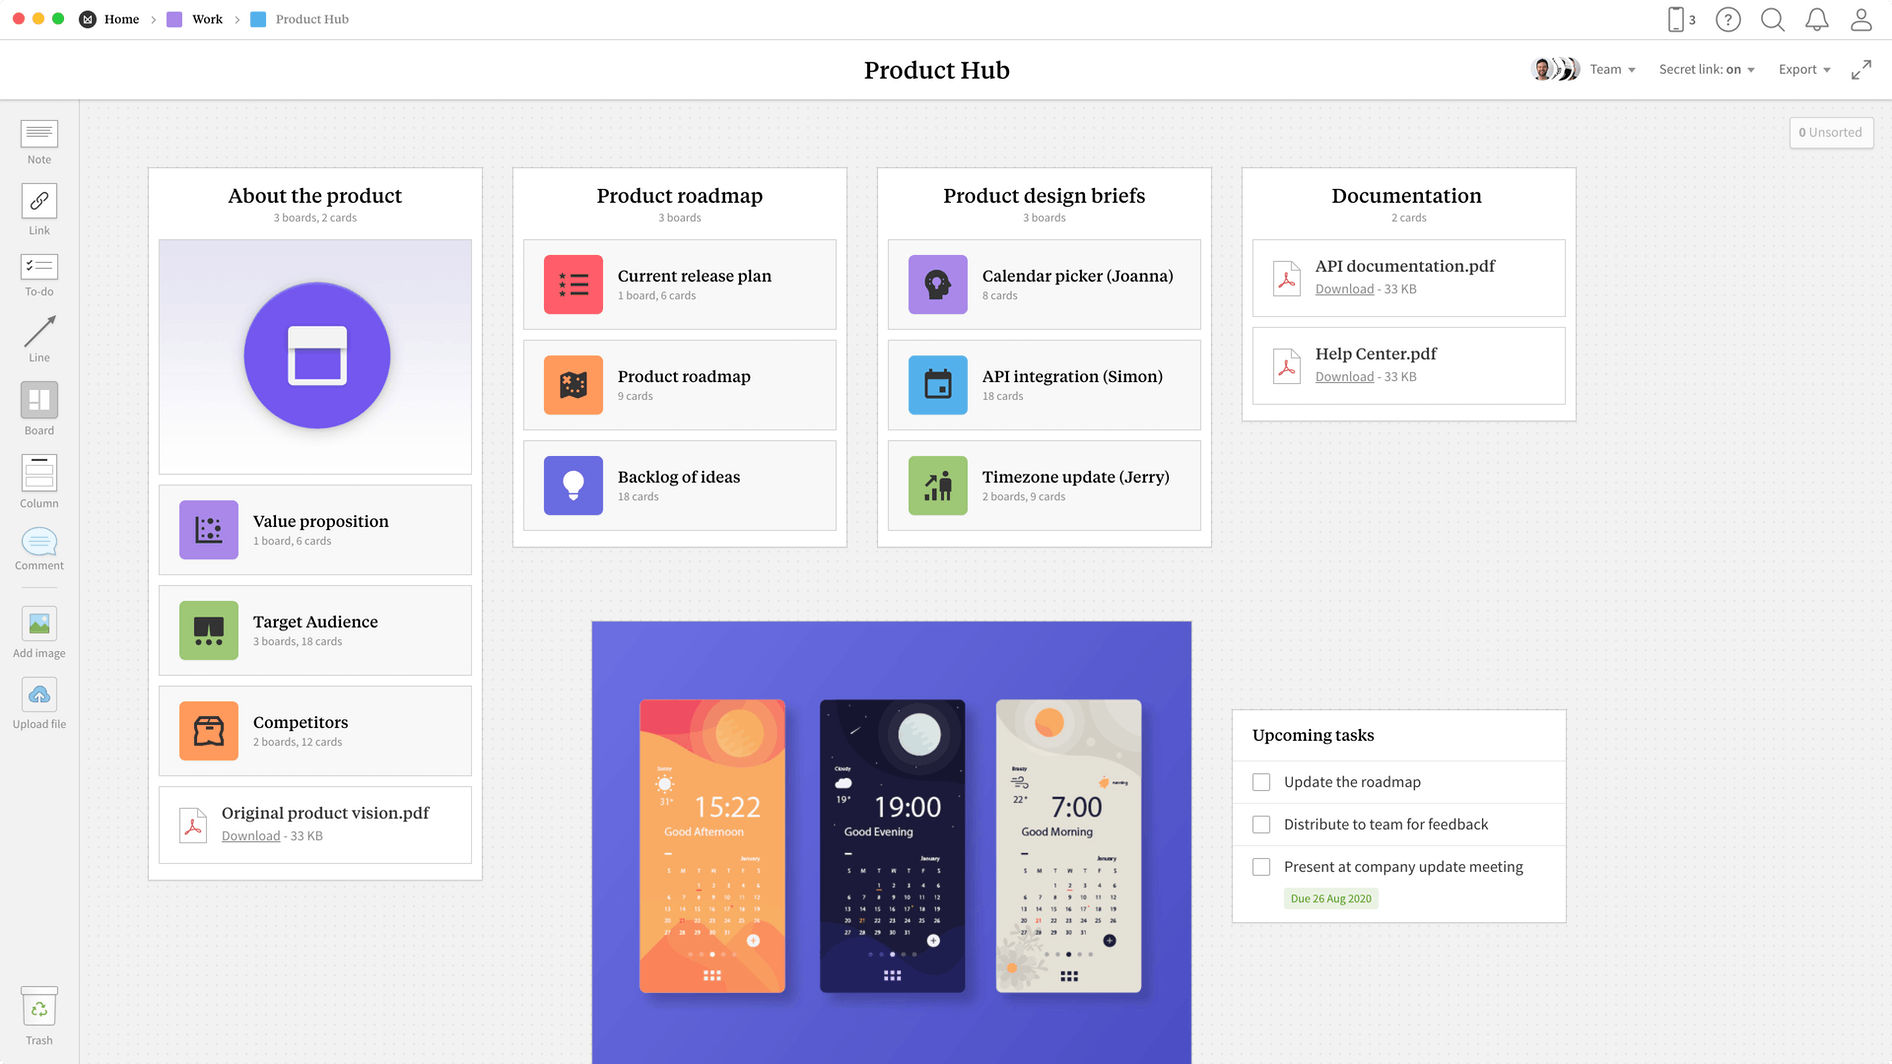 Product Hub Template, within the Milanote app